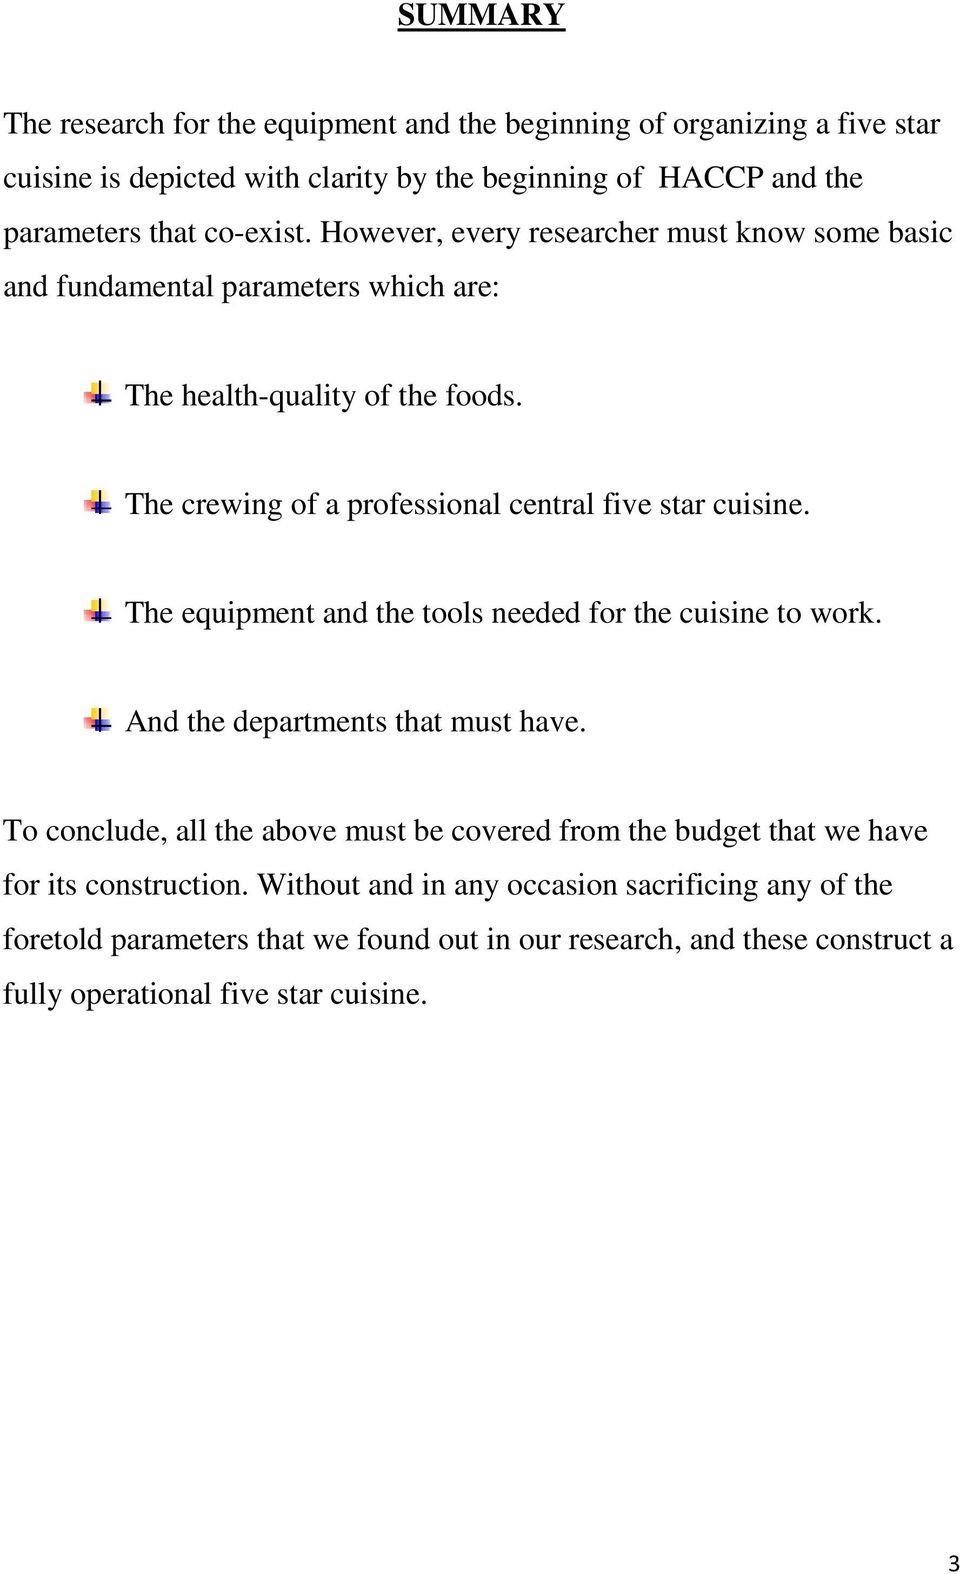 The equipment and the tools needed for the cuisine to work. And the departments that must have.